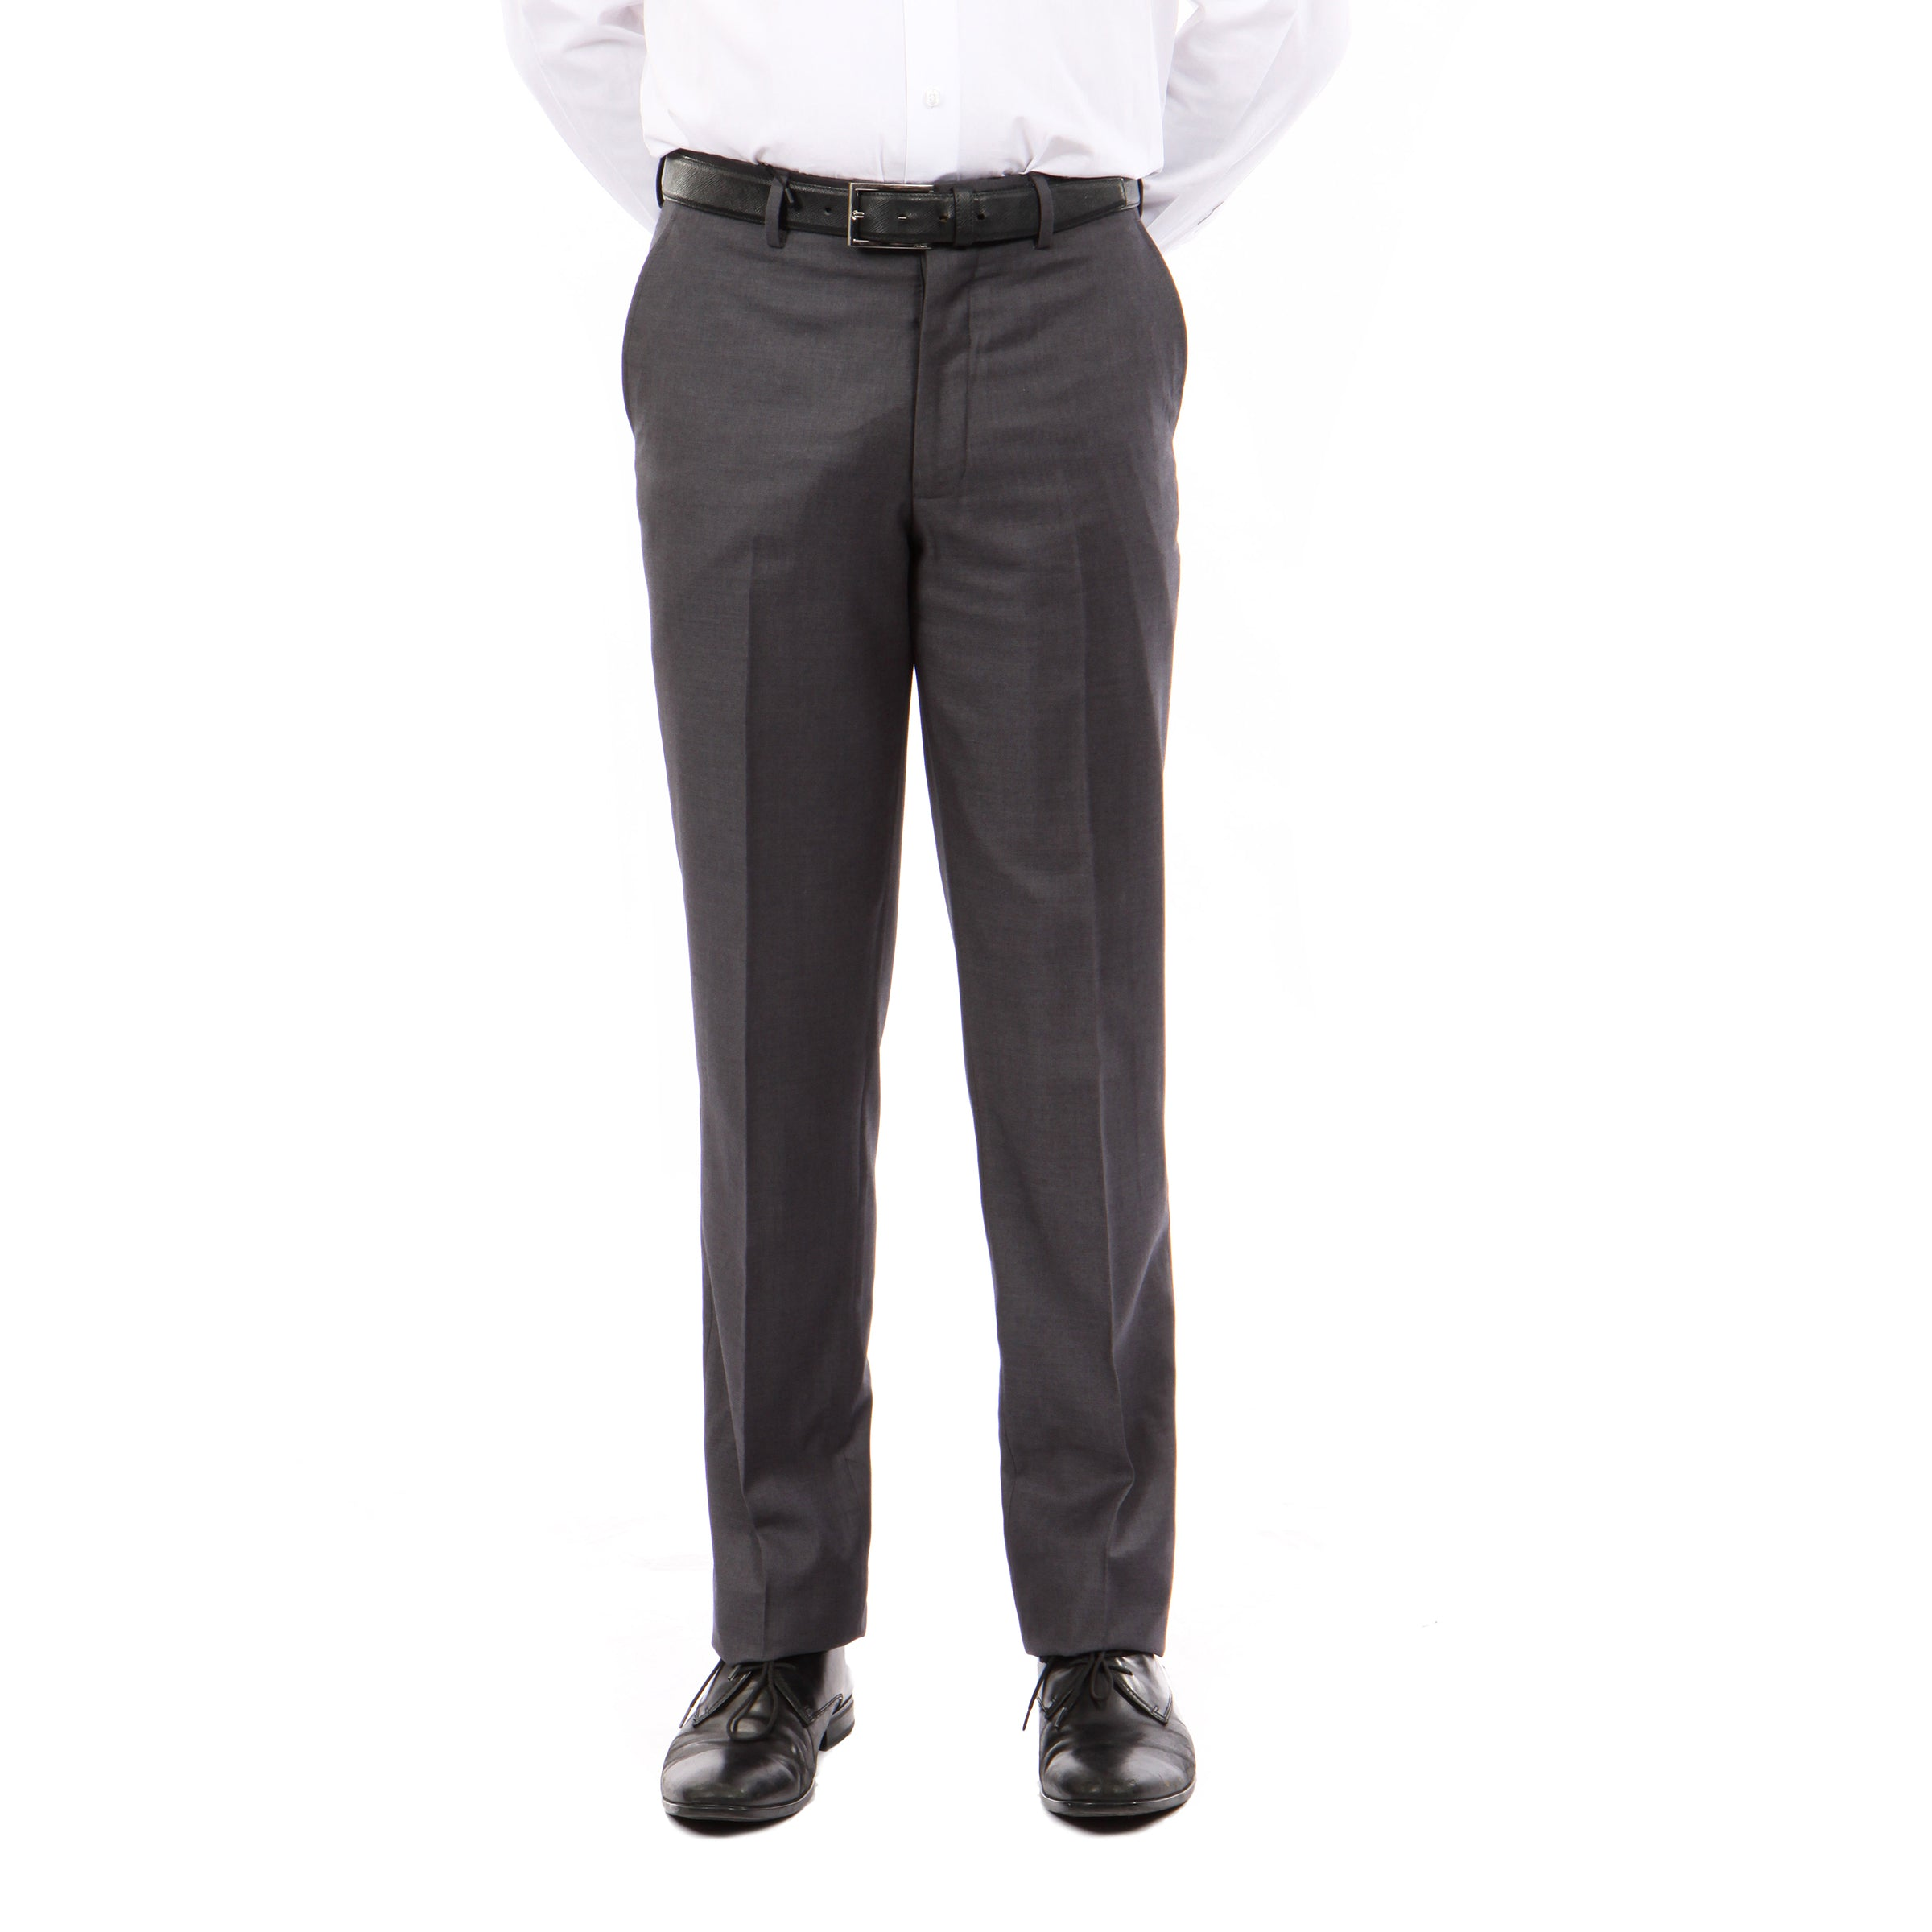 Tazio DK Grey Slim Fit Stretch Dress Pants For Men